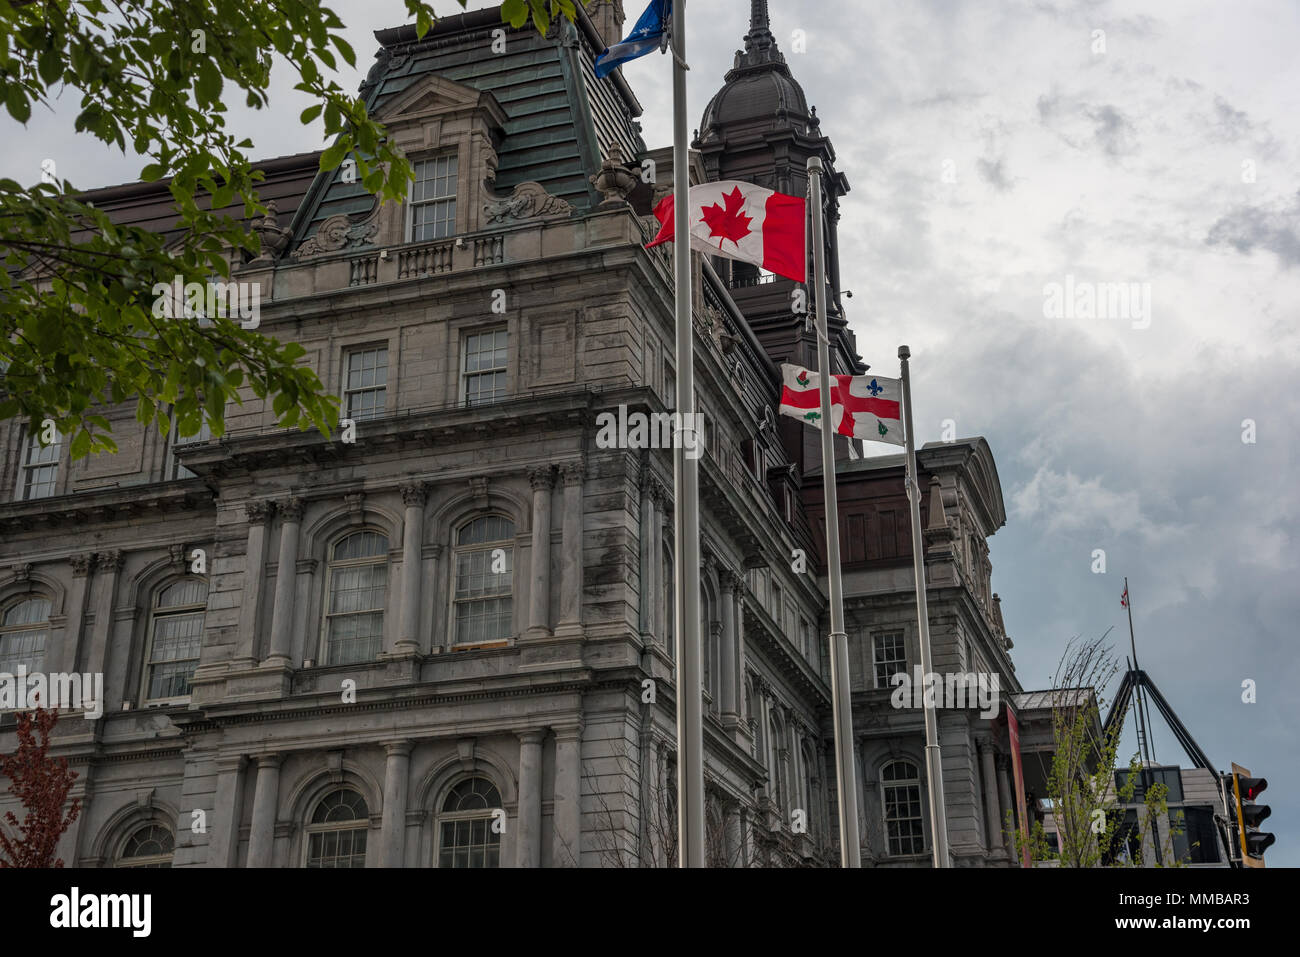 August 4, 2017 - Montreal, Canada: Montreal City or Town Hall and Government Office square - Stock Image